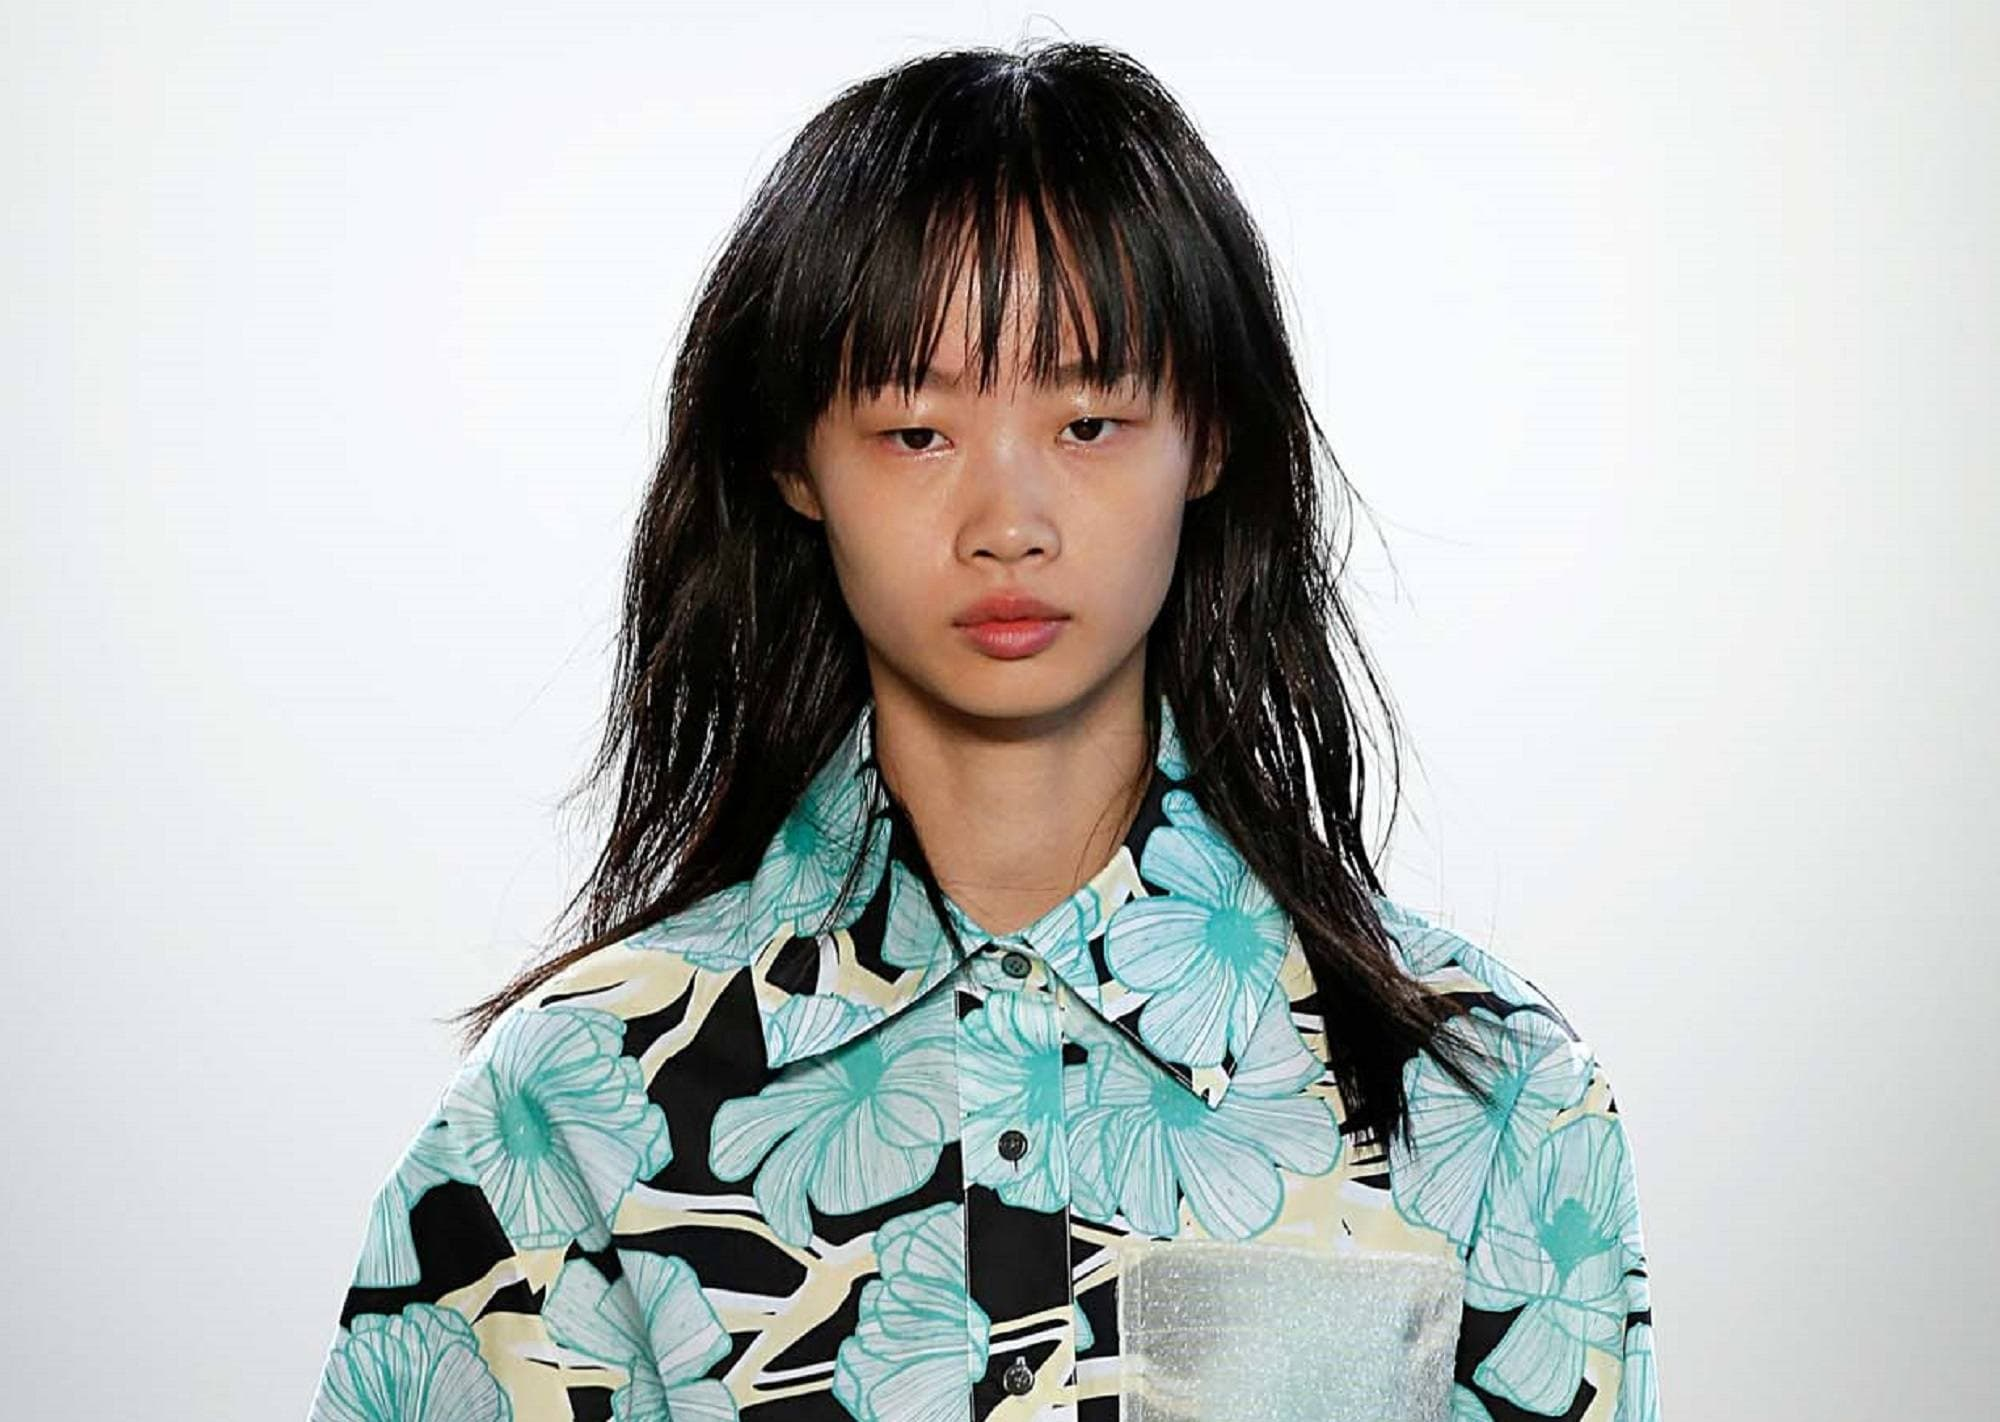 Wispy hair: Closeup shot of Asian woman wearing a printed dress with long black wispy hair and bangs against white background